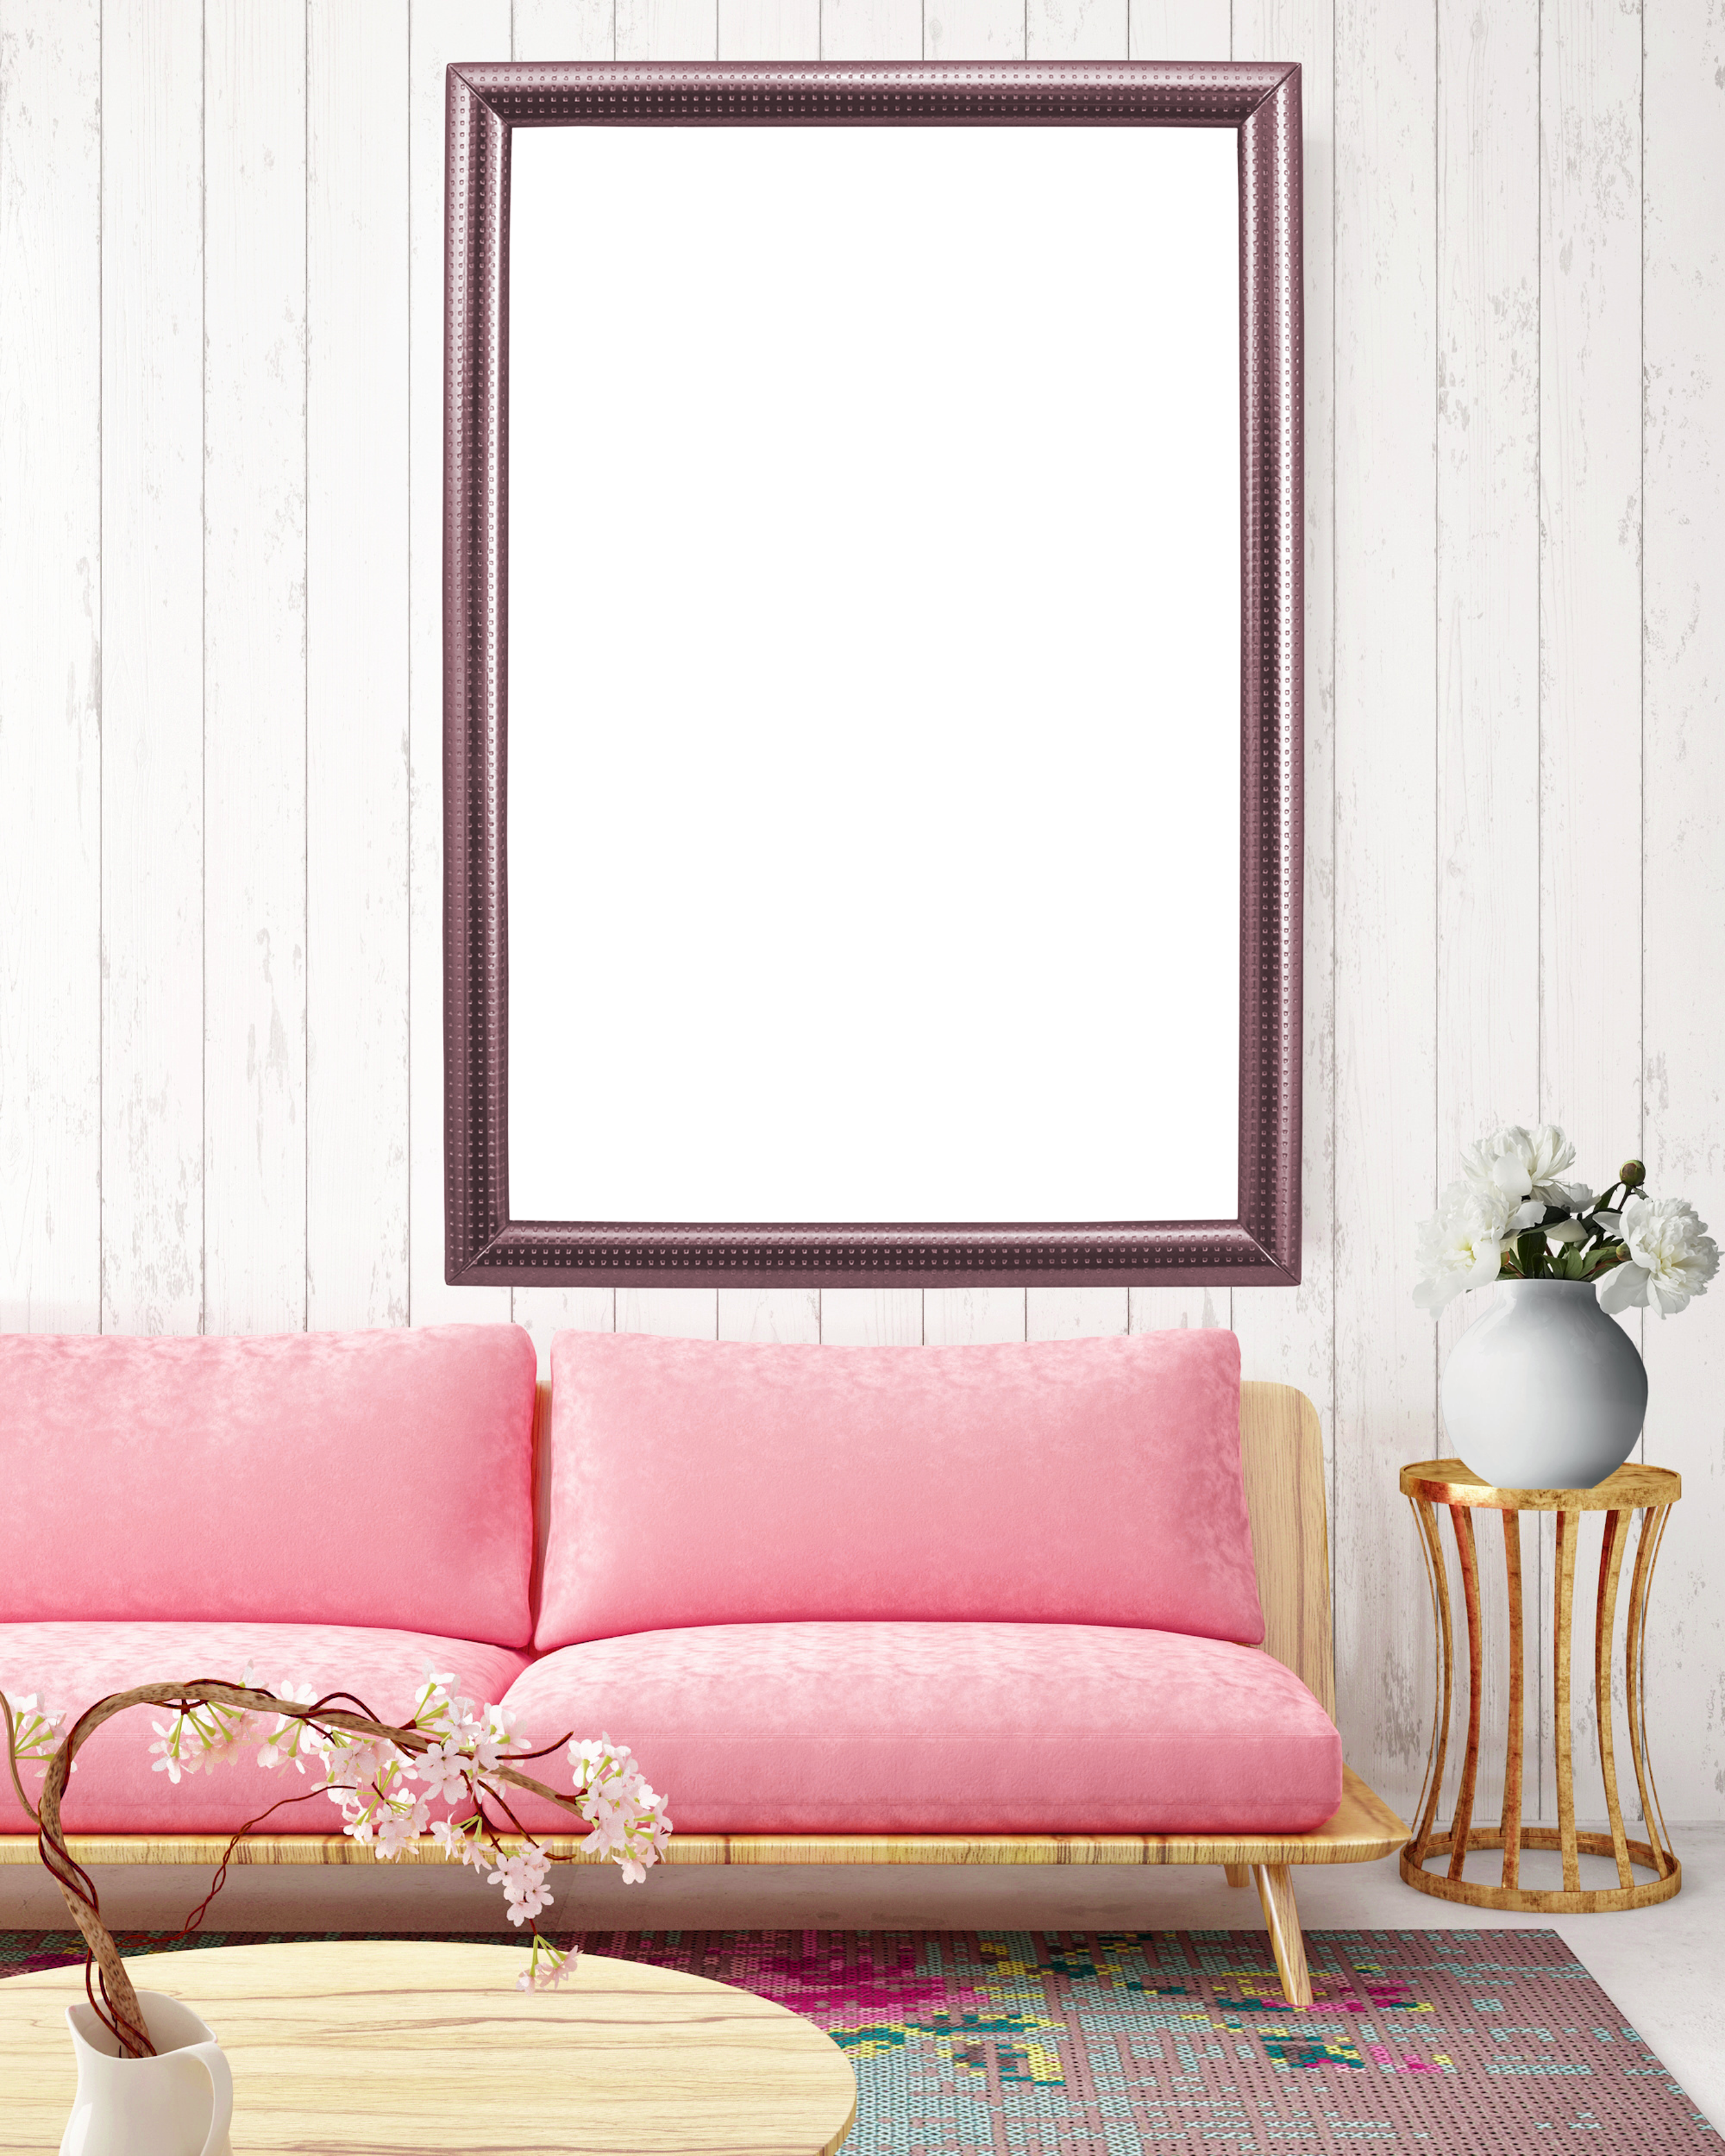 black and white download Picture transparent png frame. Room wall clipart